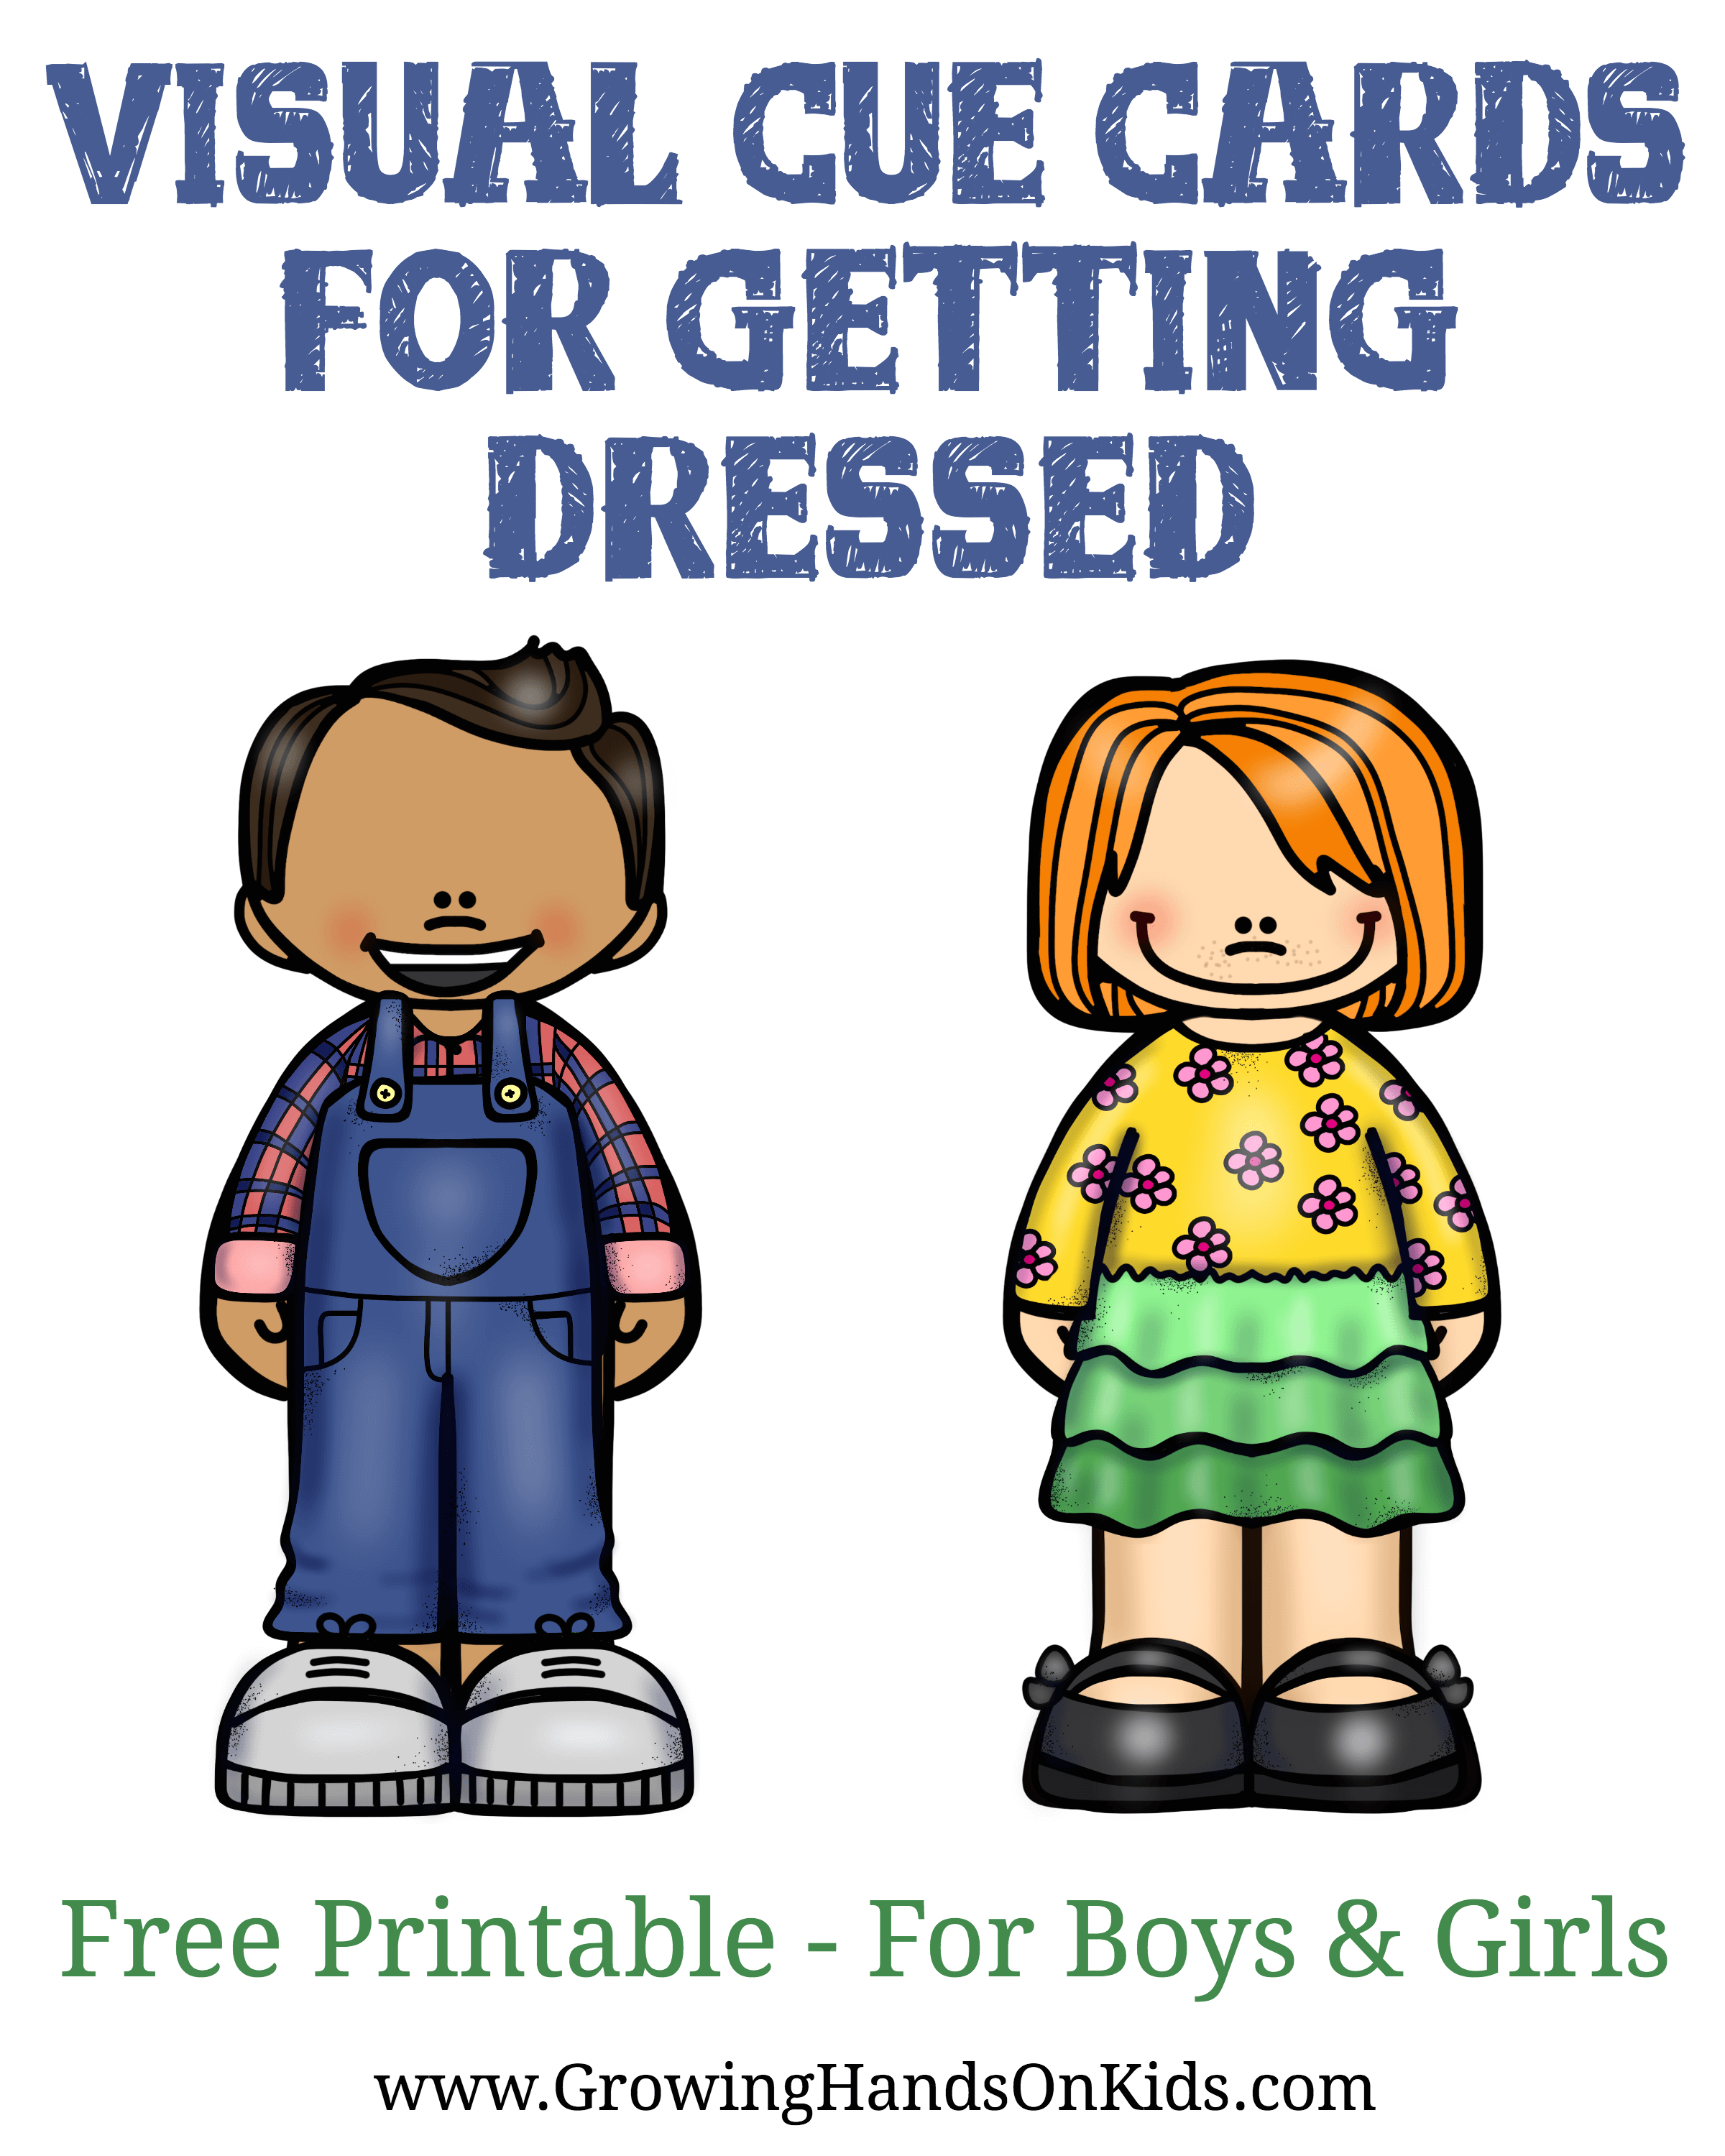 Visual cue cards for getting dressed, free printable for kids! - PNG Get  Dressed - Getting Dressed PNG HD